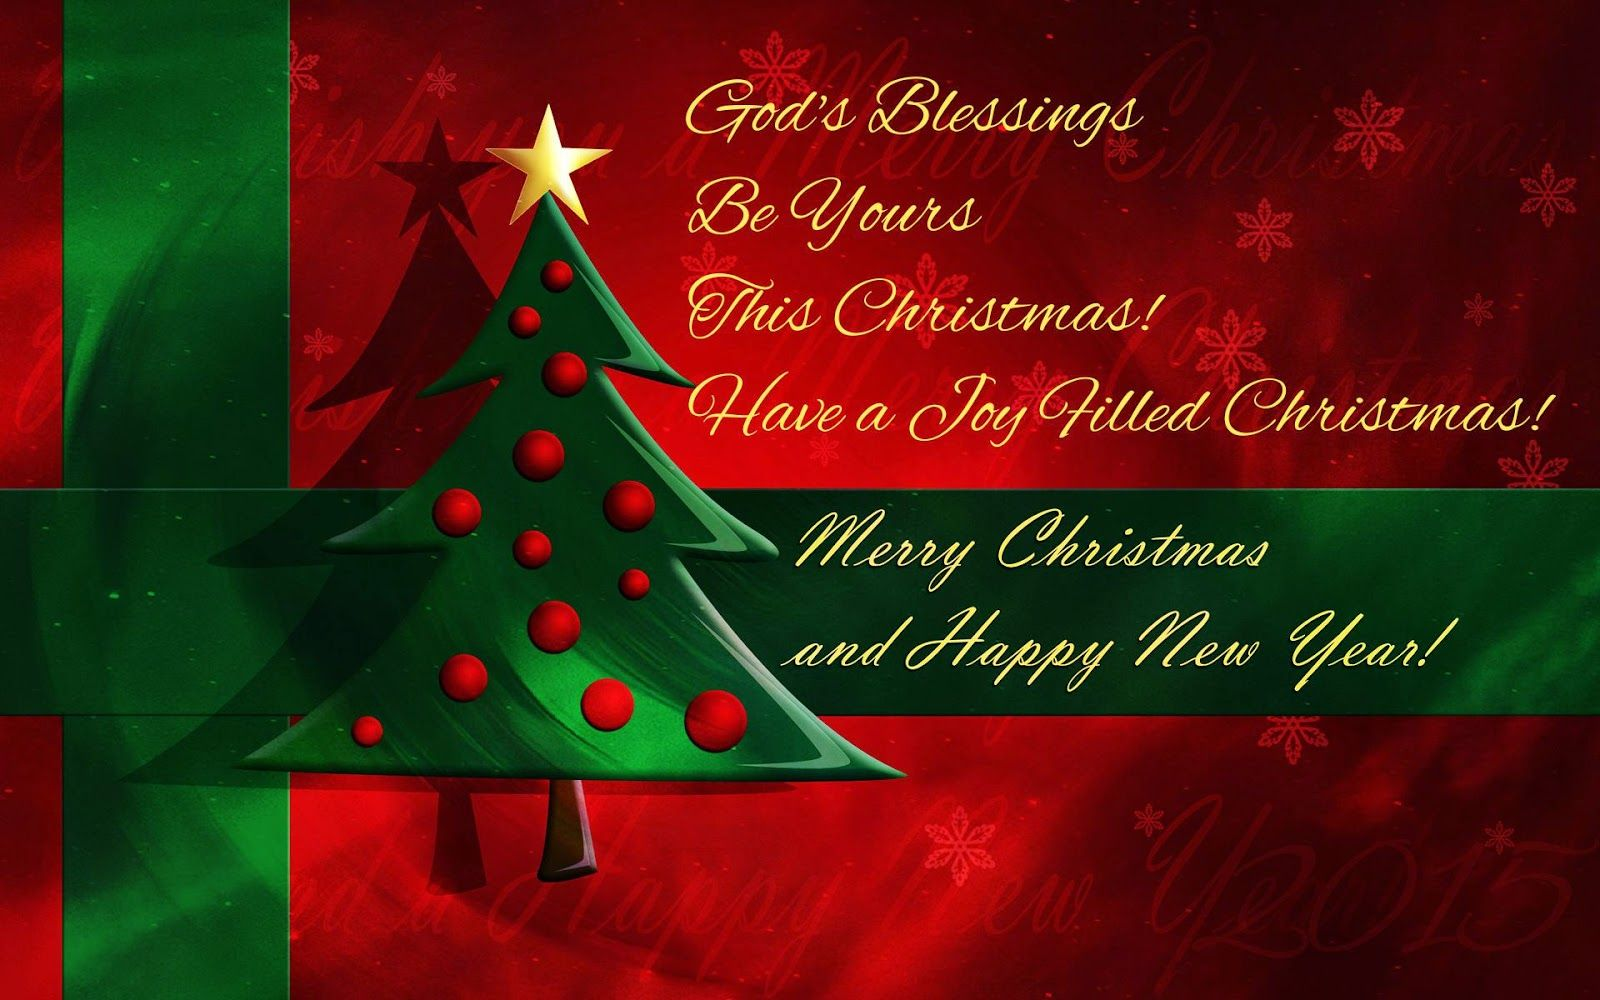 Top merry christmas wishes and messages christmas quotes top merry christmas wishes and messages christmas quotes messages and merry kristyandbryce Choice Image